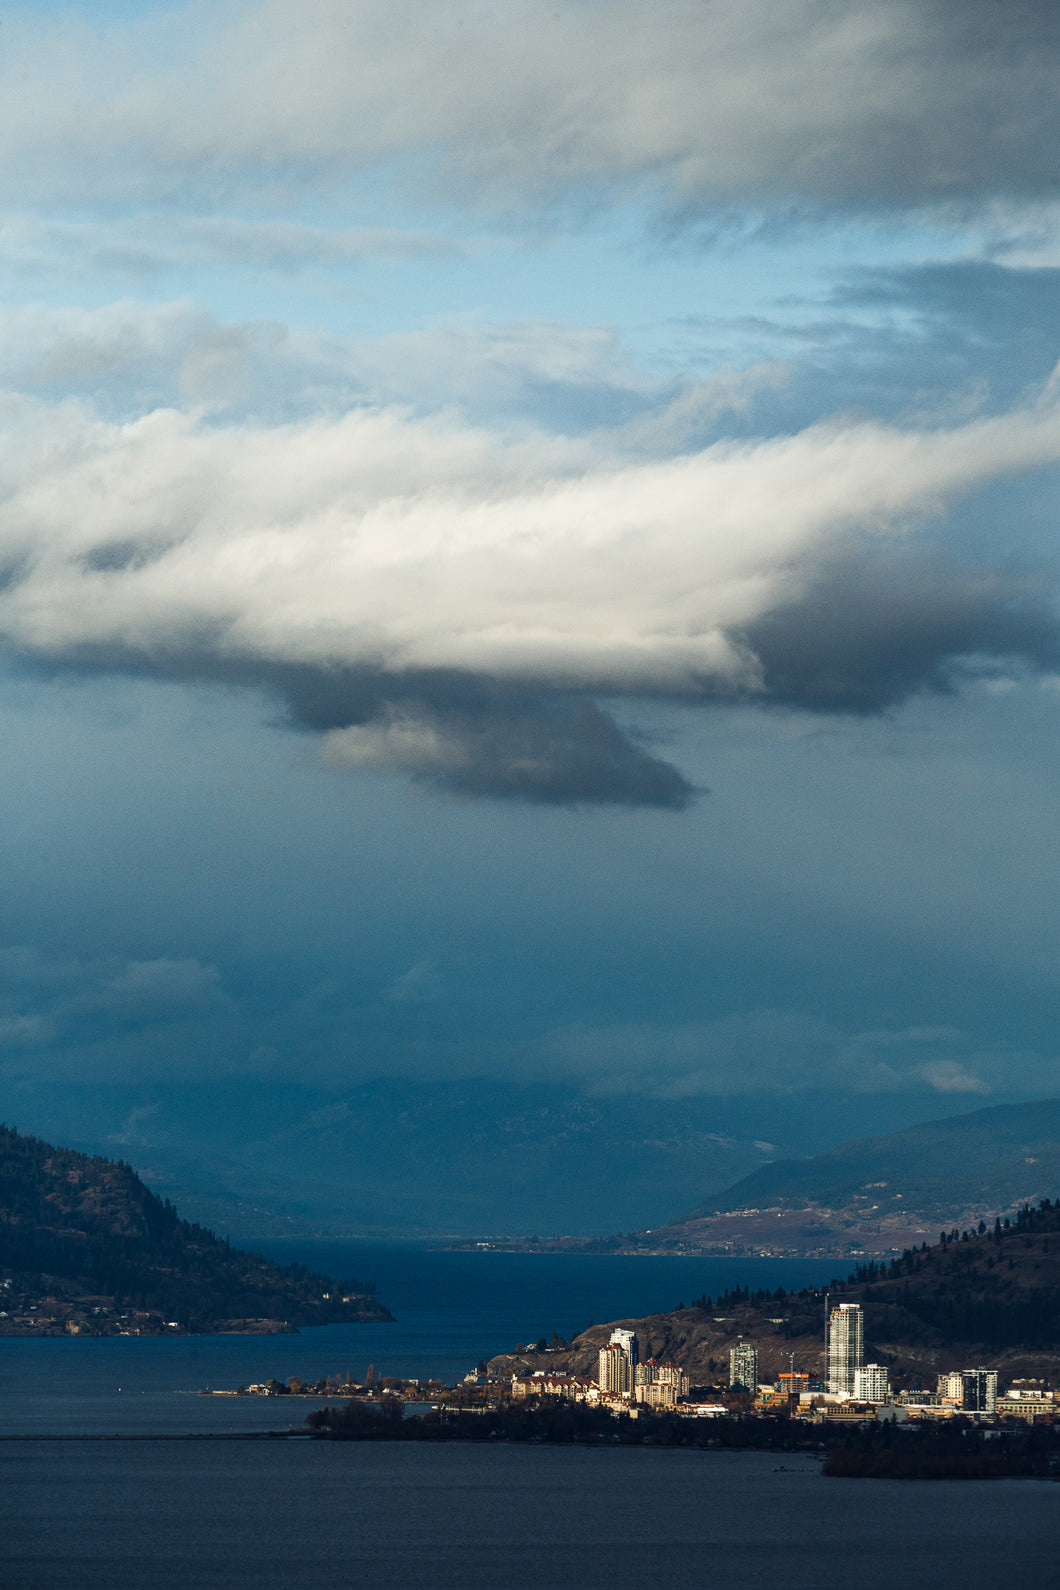 The Clouds Part II - Kelowna, BC, late November.